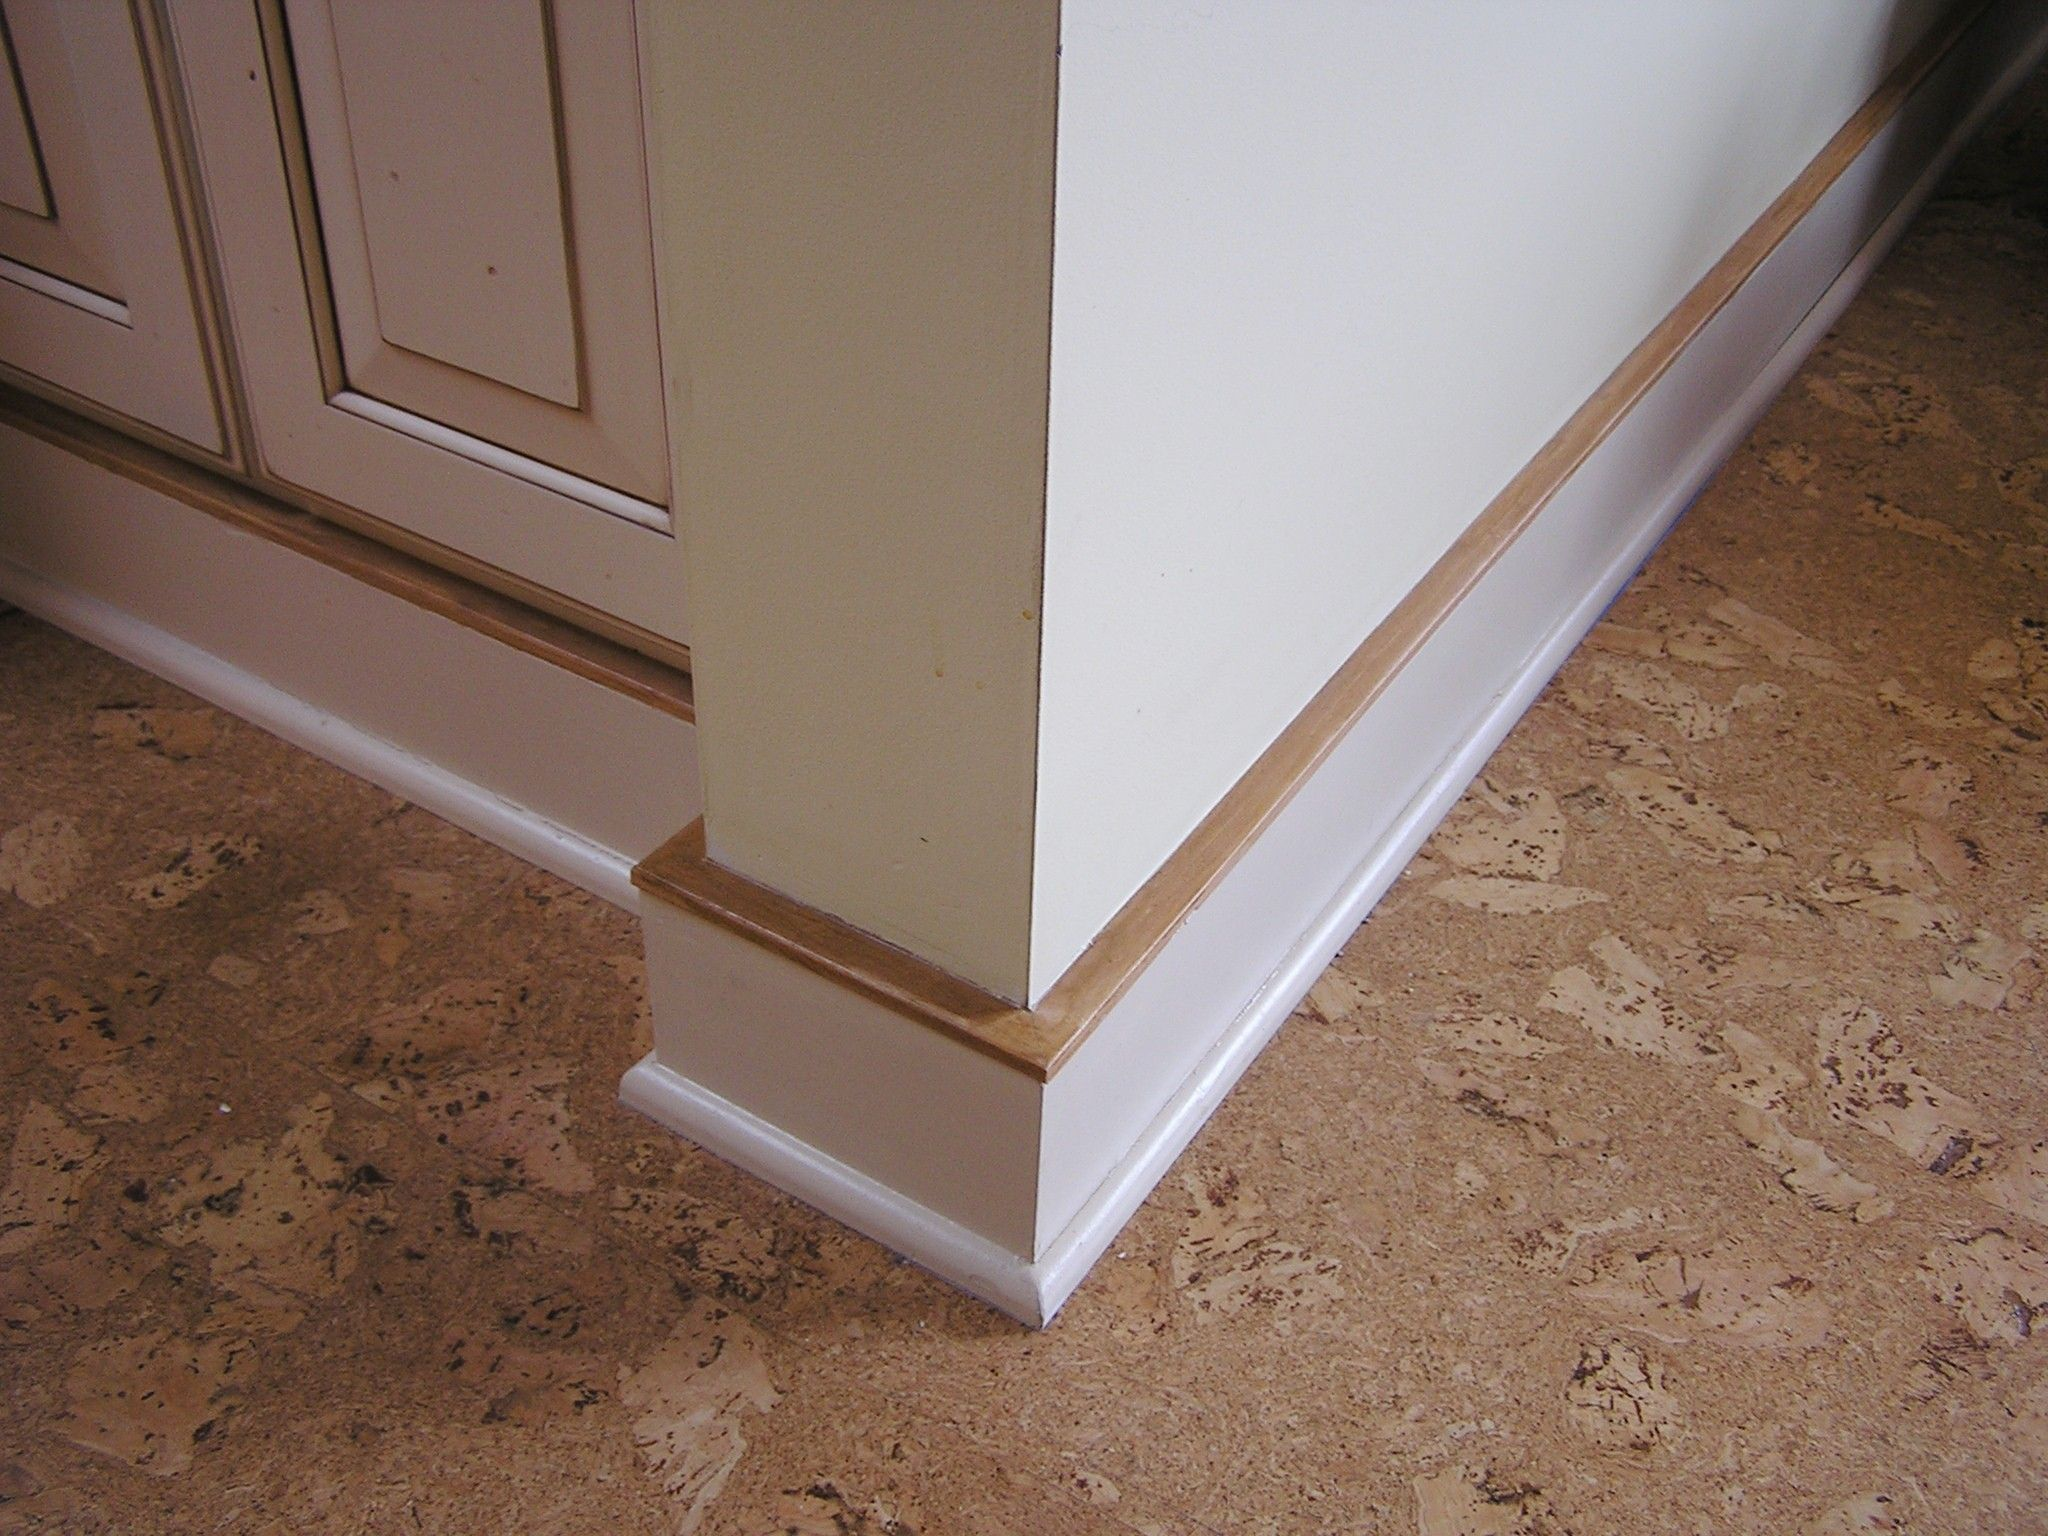 How to cut base molding in place - Take A Look At Baseboard And Trim Details Mdf Baseboard And Hardwood Base Shoe Were